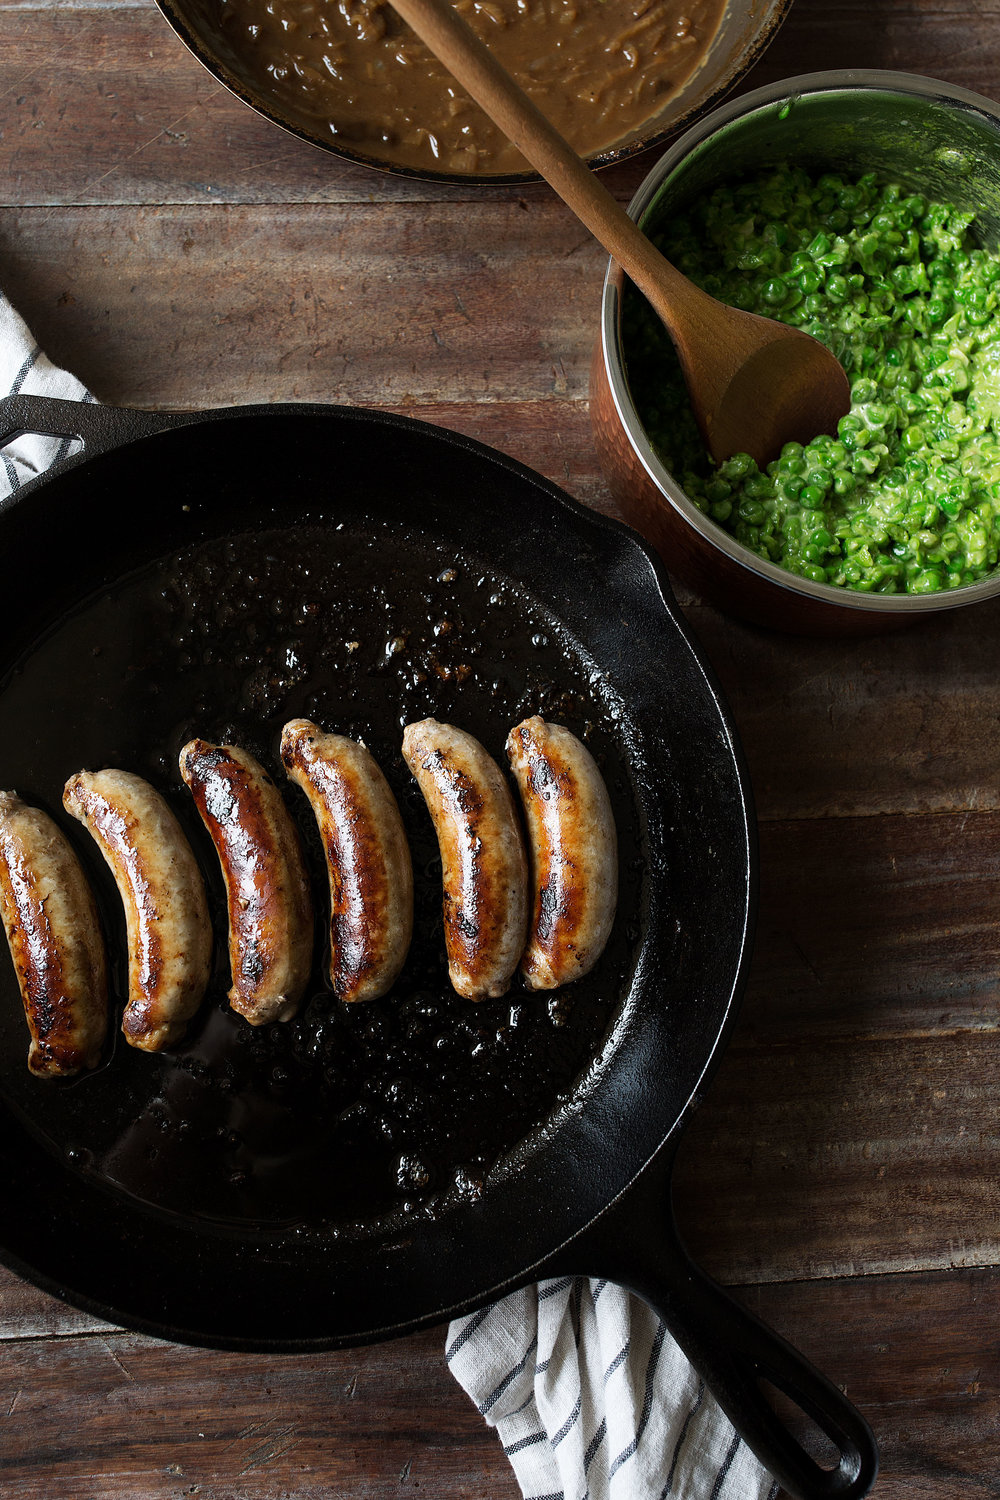 bangers and cauliflower mash with guinness onion gravy and mushy peas ingredients st. patrick's day